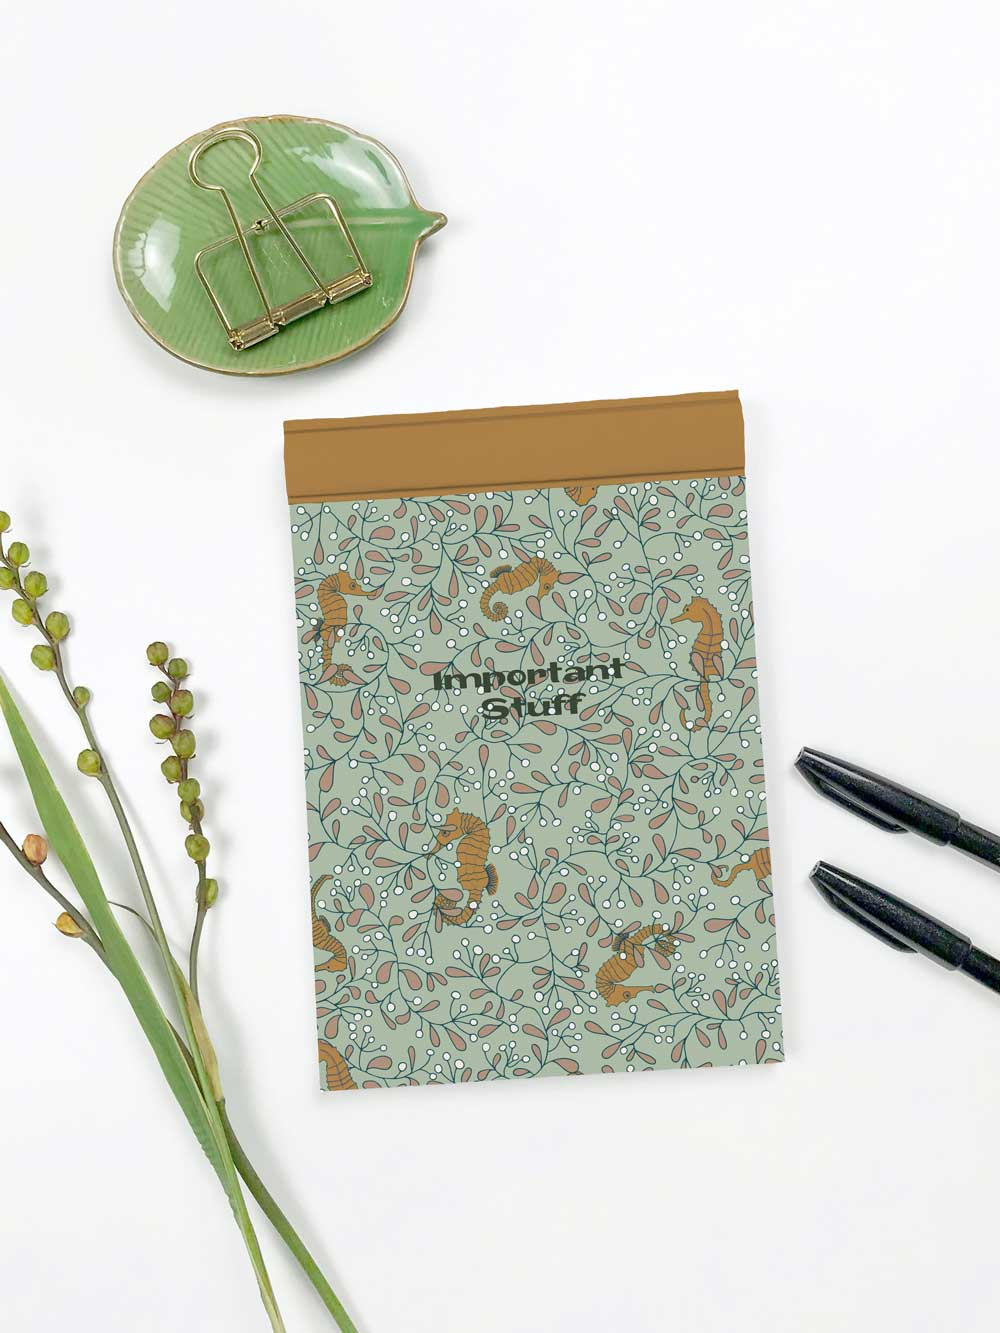 Seahorse Surface Pattern Design on Notebook